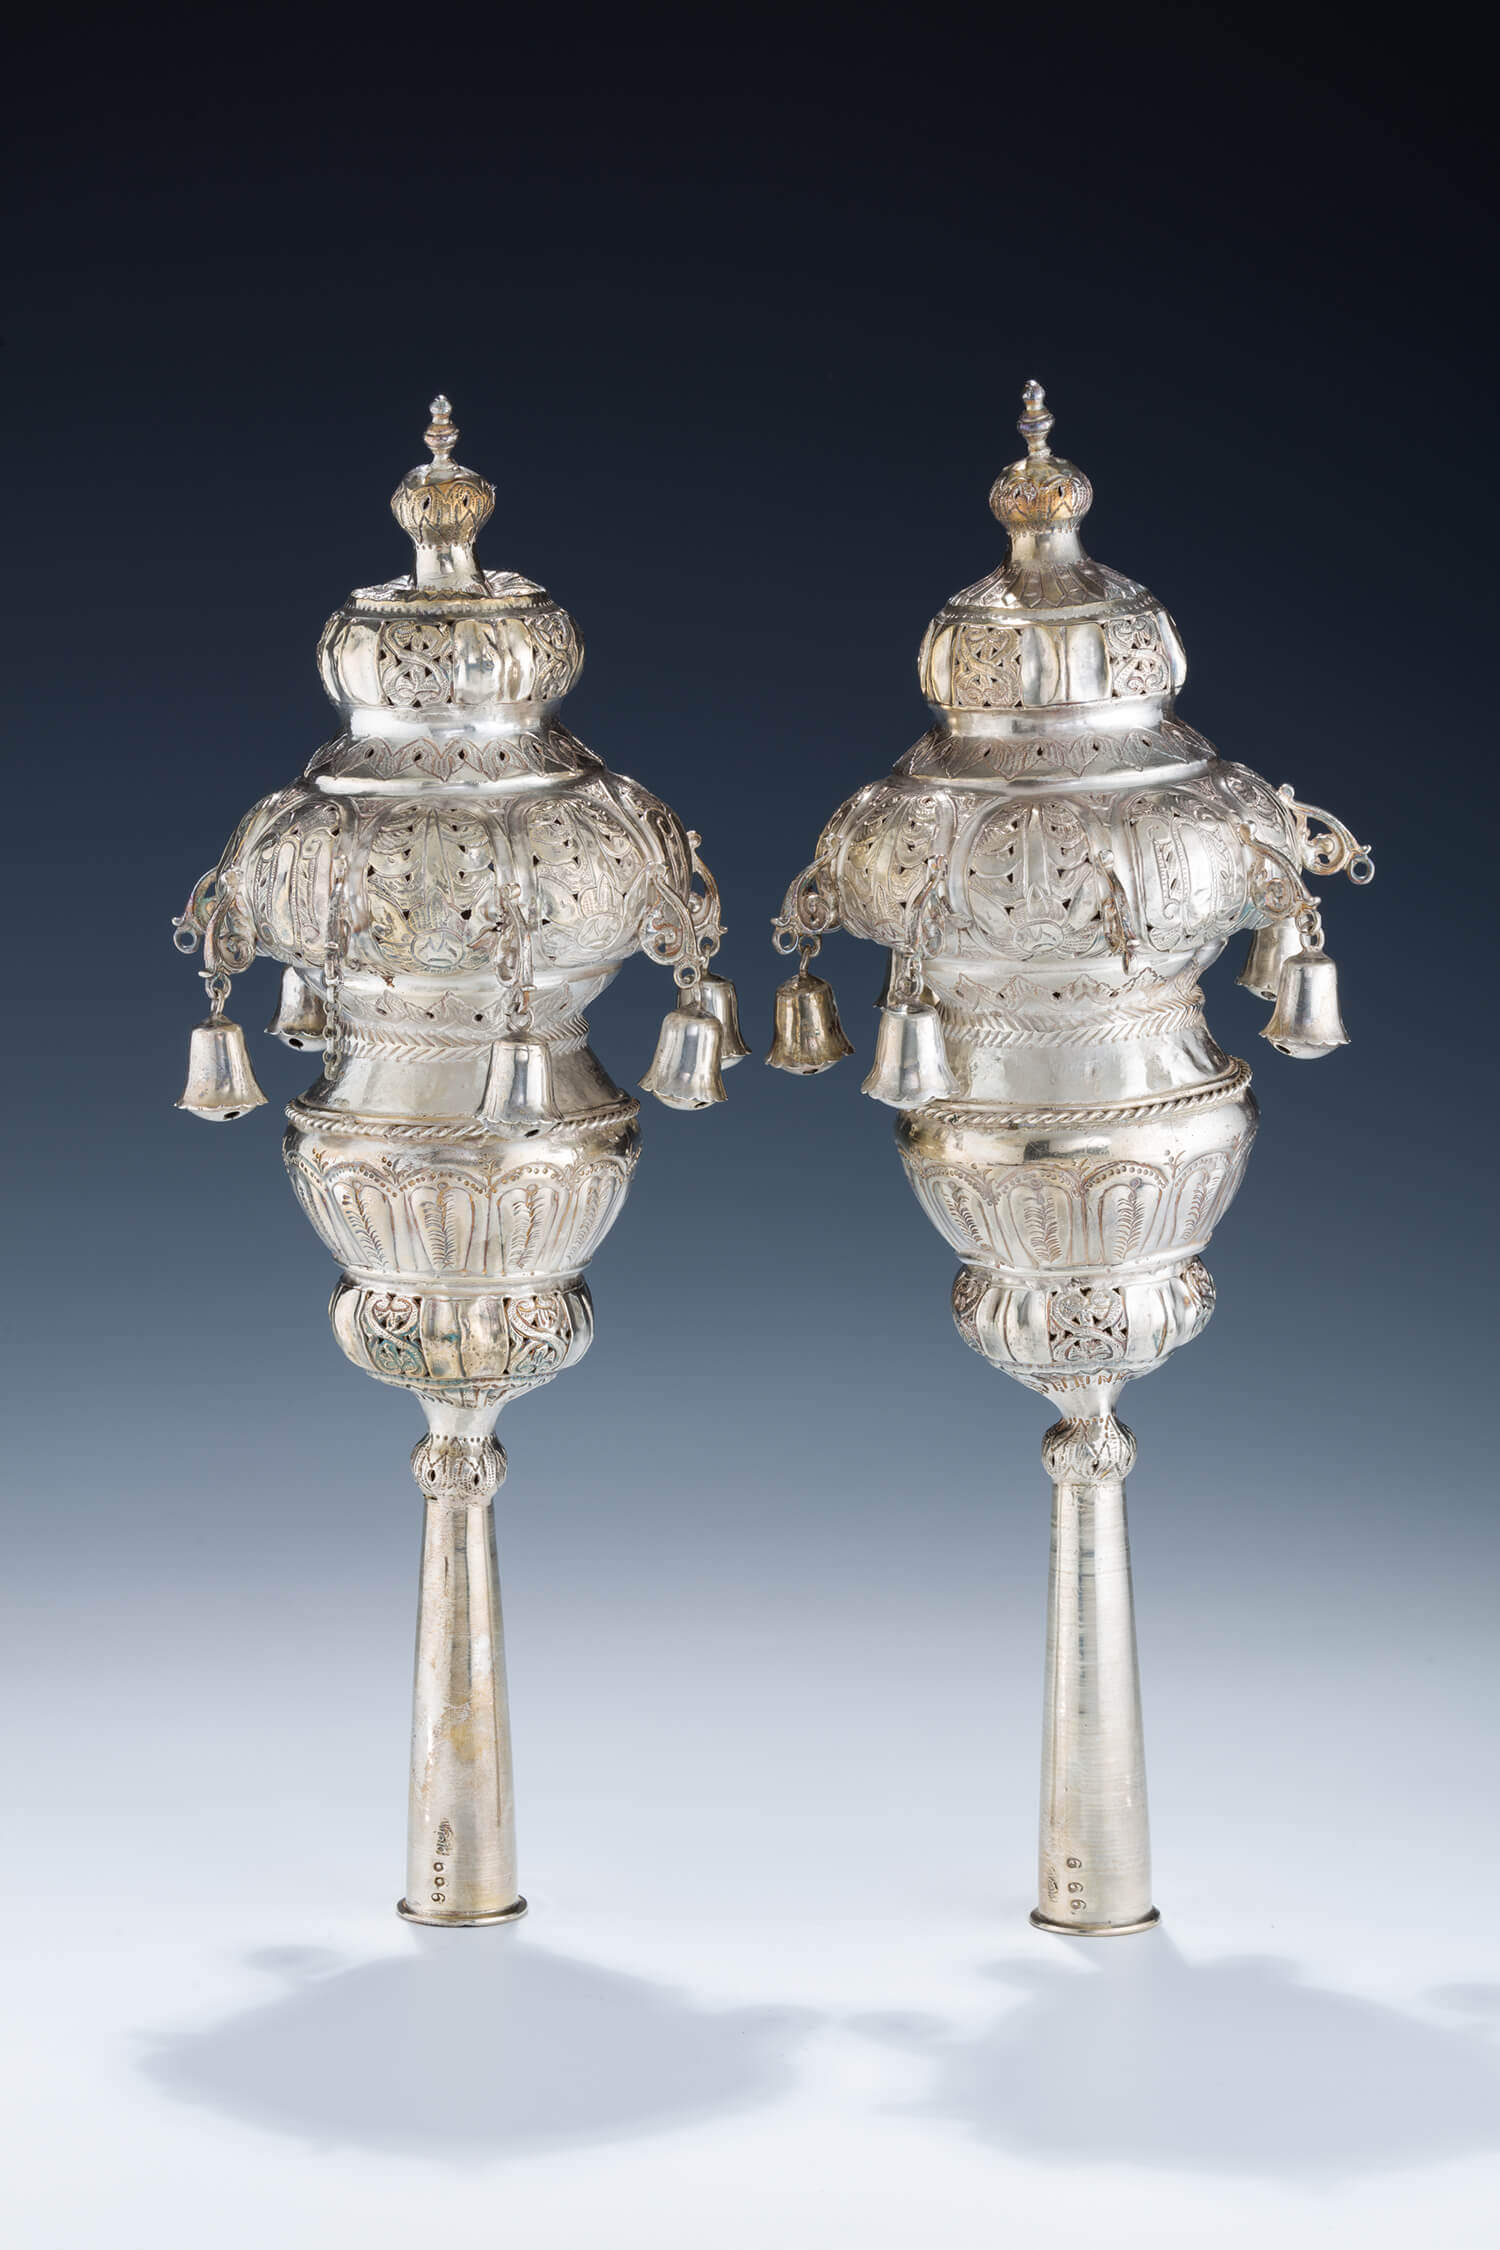 033. A PAIR OF PURE SILVER TORAH FINIALS